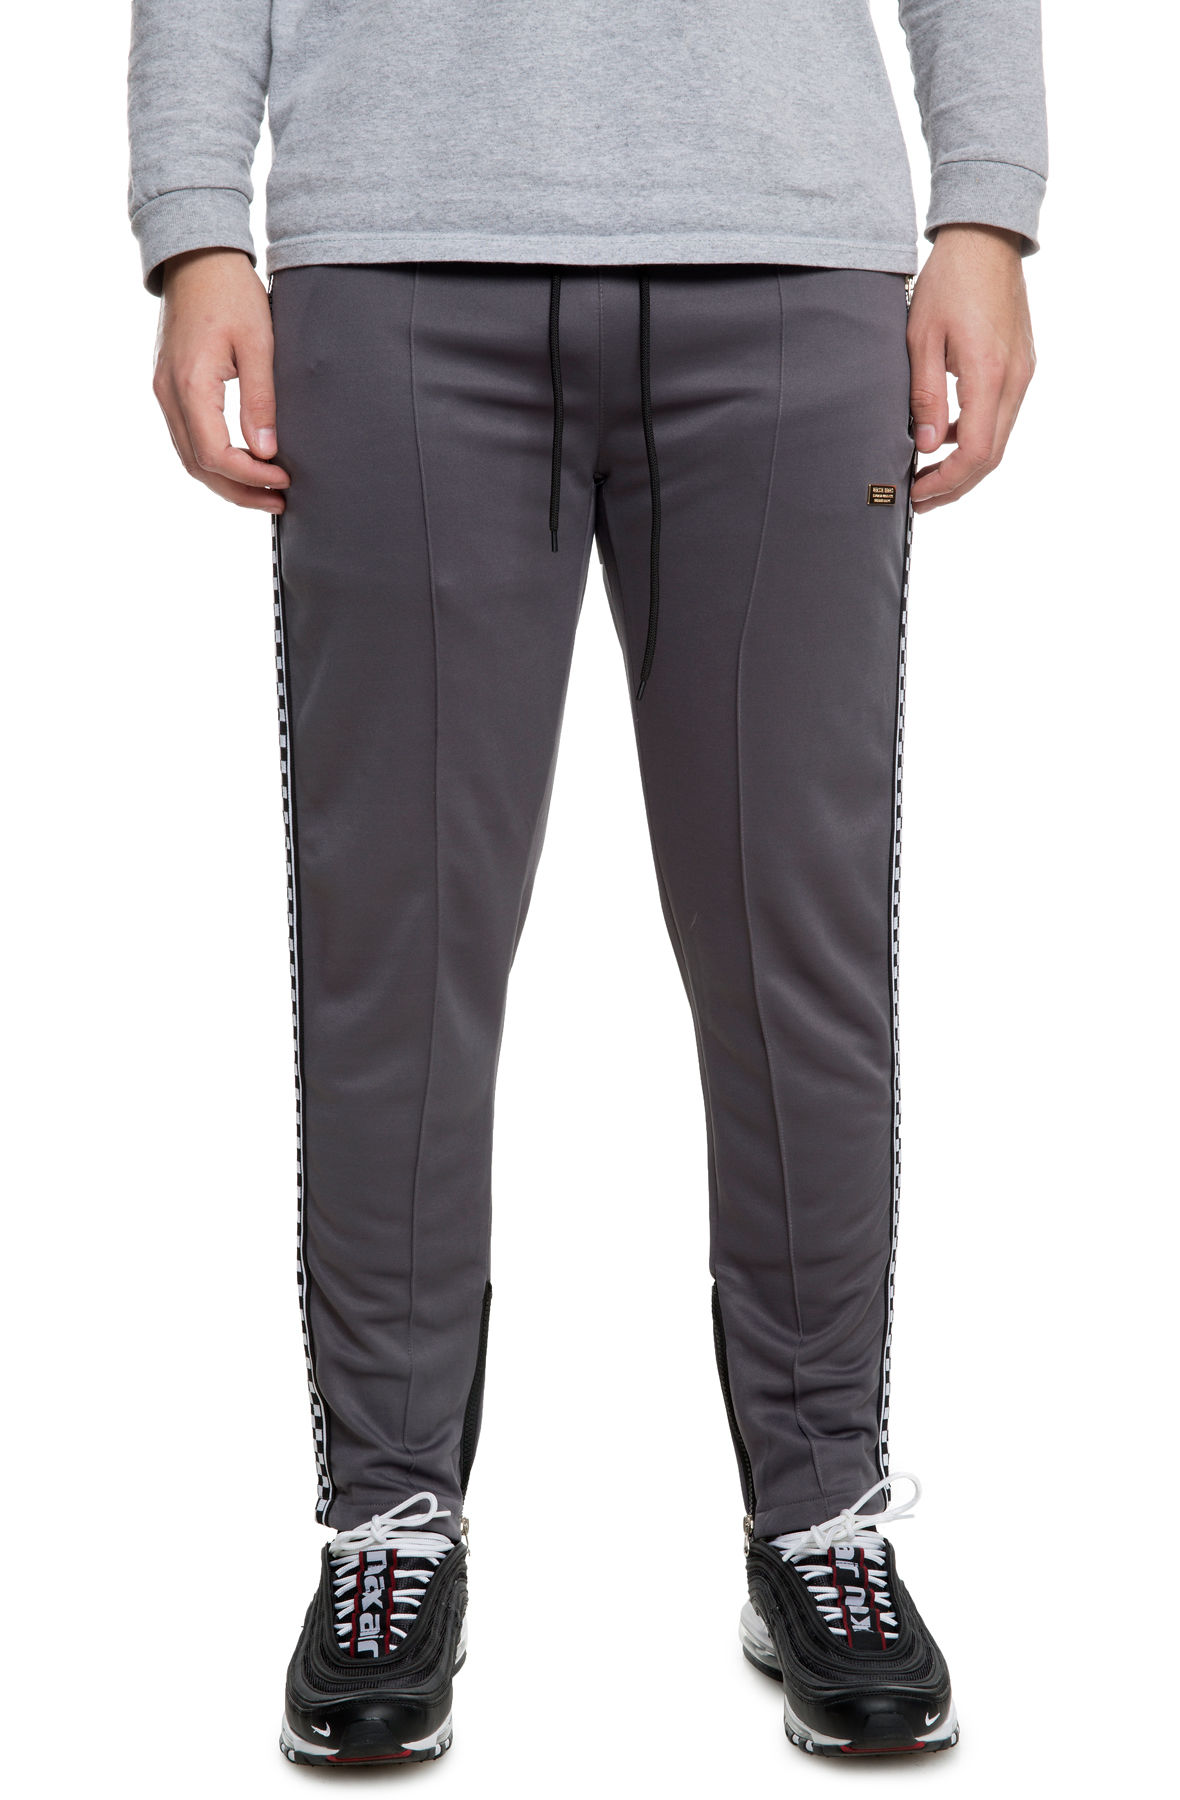 Image of The Lexington Check Track Pants in Grey